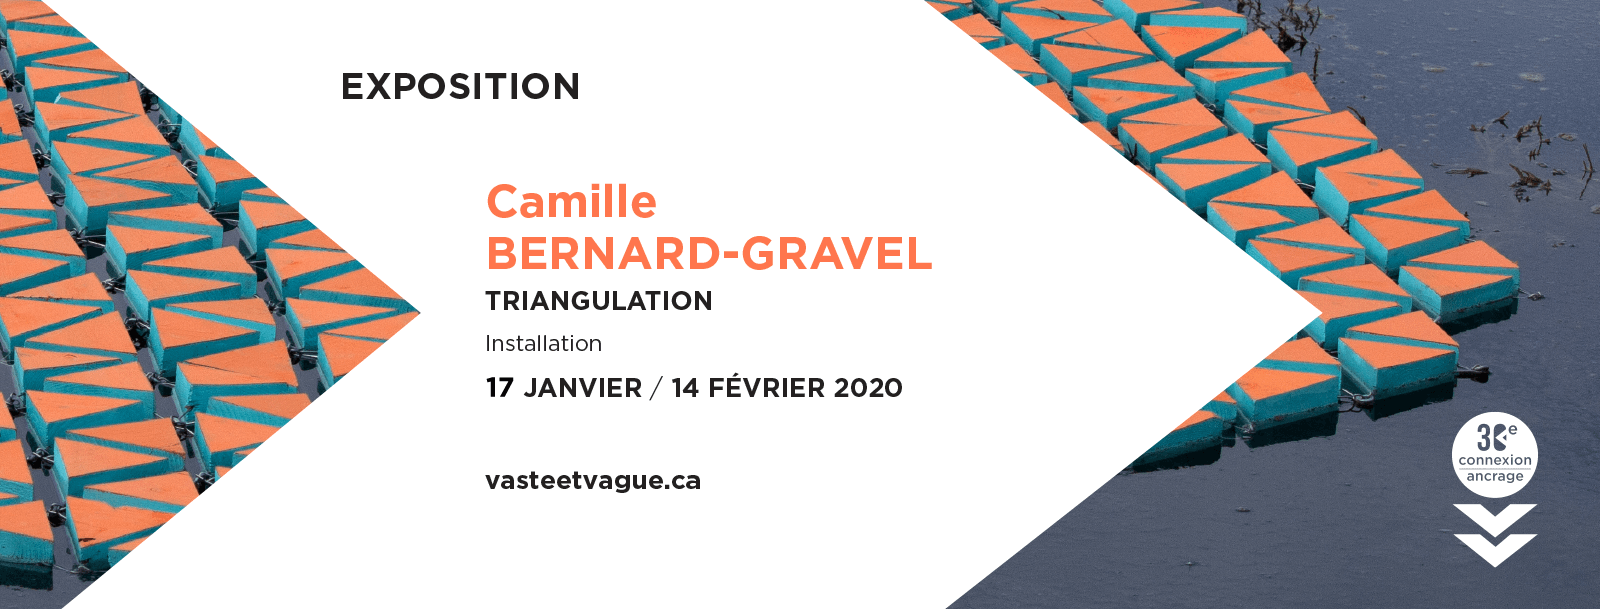 TRIANGULATION | Installation Camille BERNARD-GRAVEL